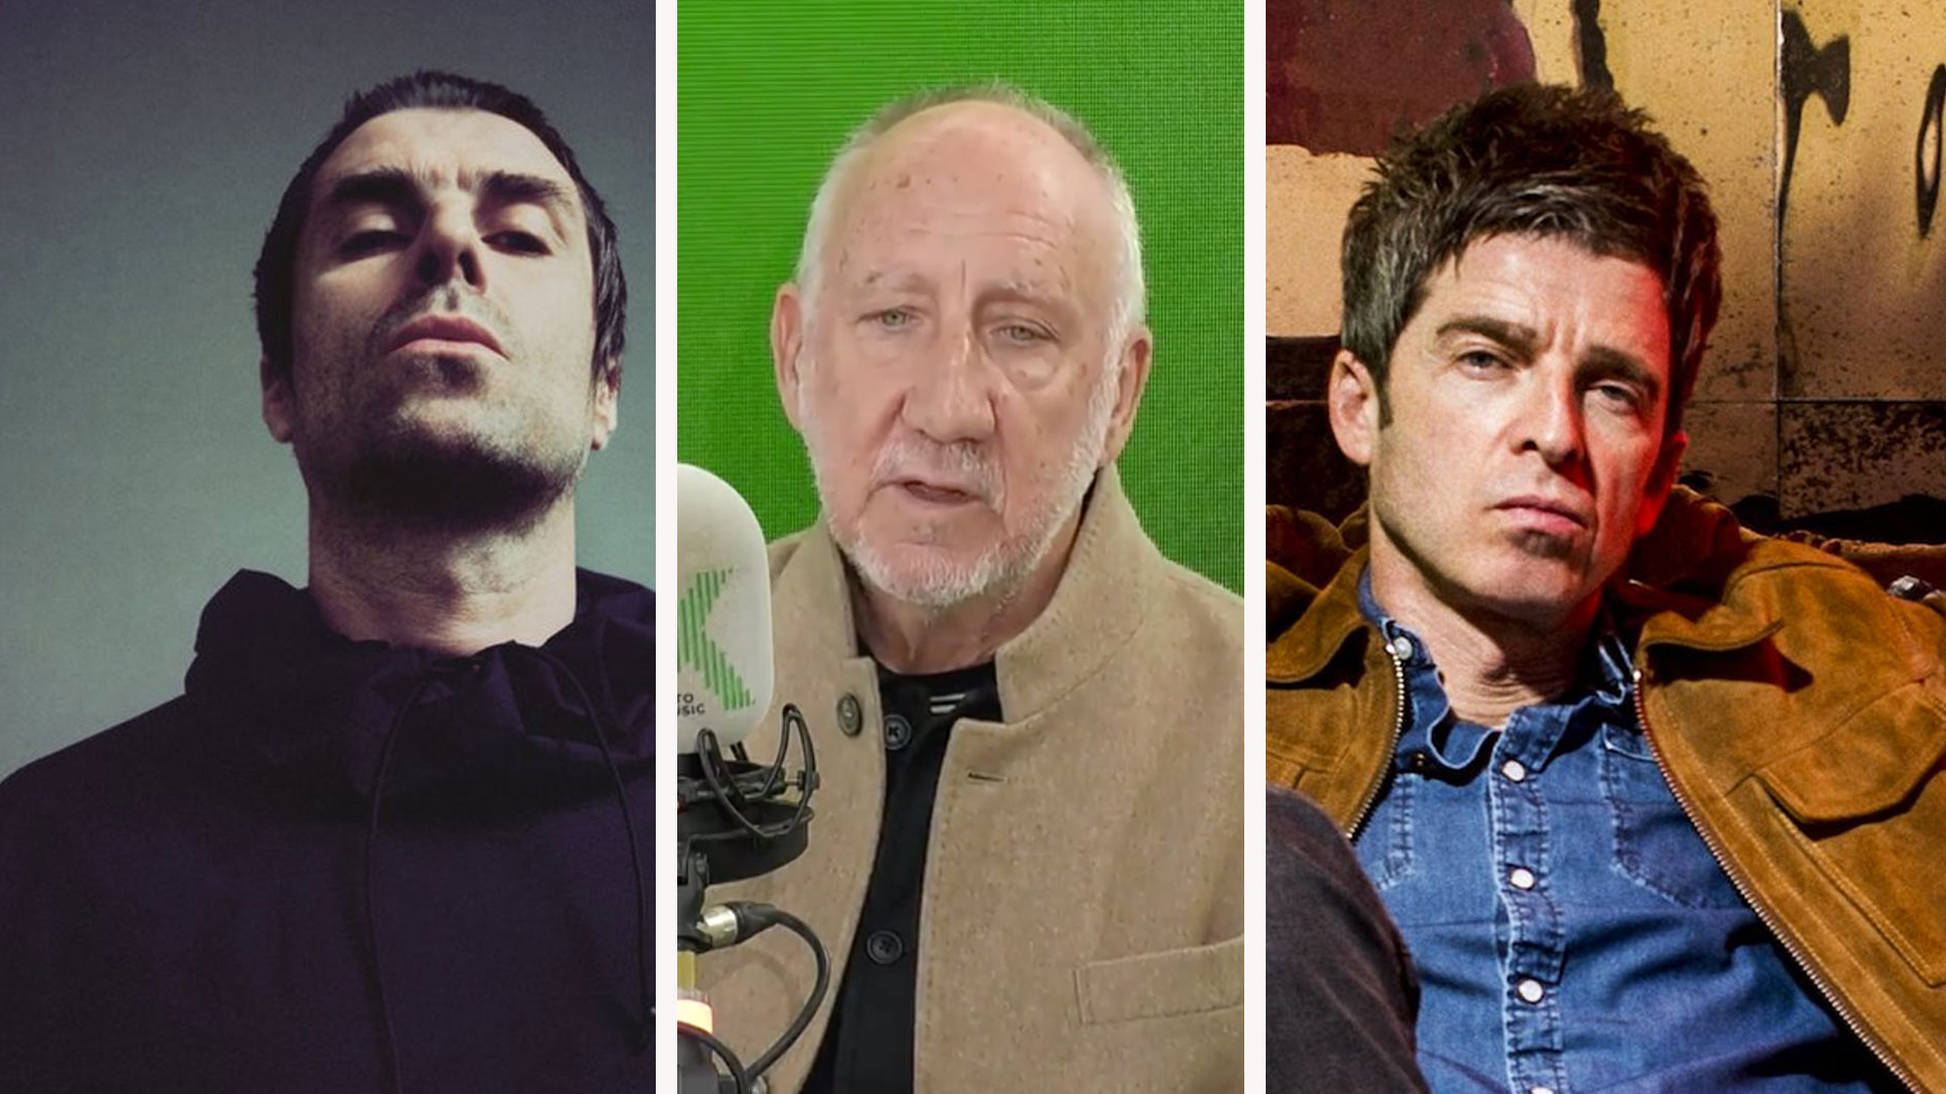 VIDEO: The Who's Pete Townshend gives his verdict on Noel and Liam Gallaghers' solo material